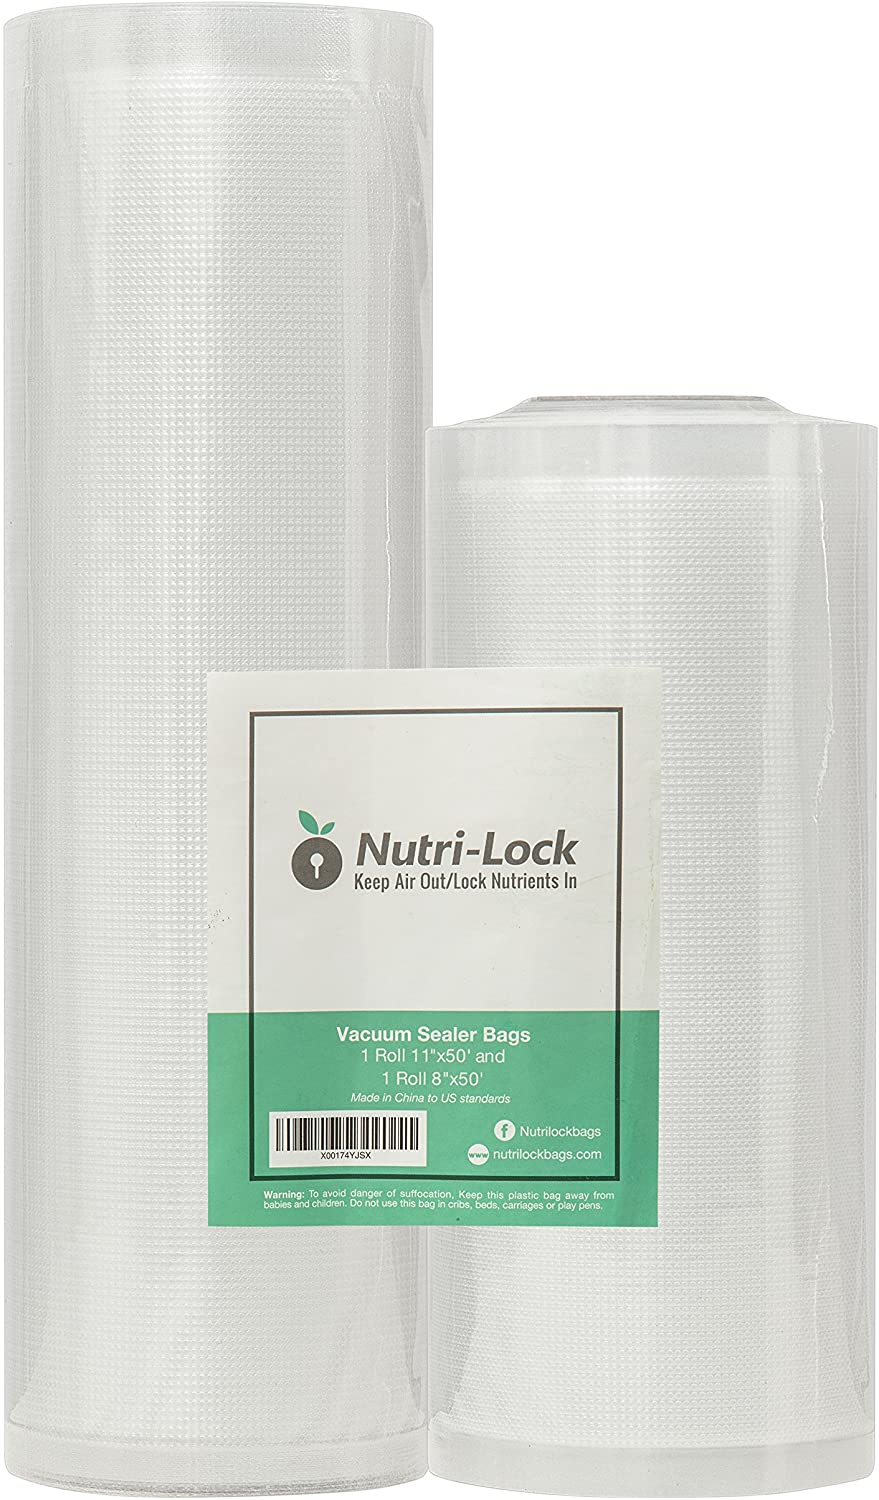 Nutri-Lock Vacuum Sealer Bags. 2 Rolls 11x50 and 8x50. Commercial Grade Food Saver Bags Rolls. Works with FoodSaver. Perfect for Sous Vide